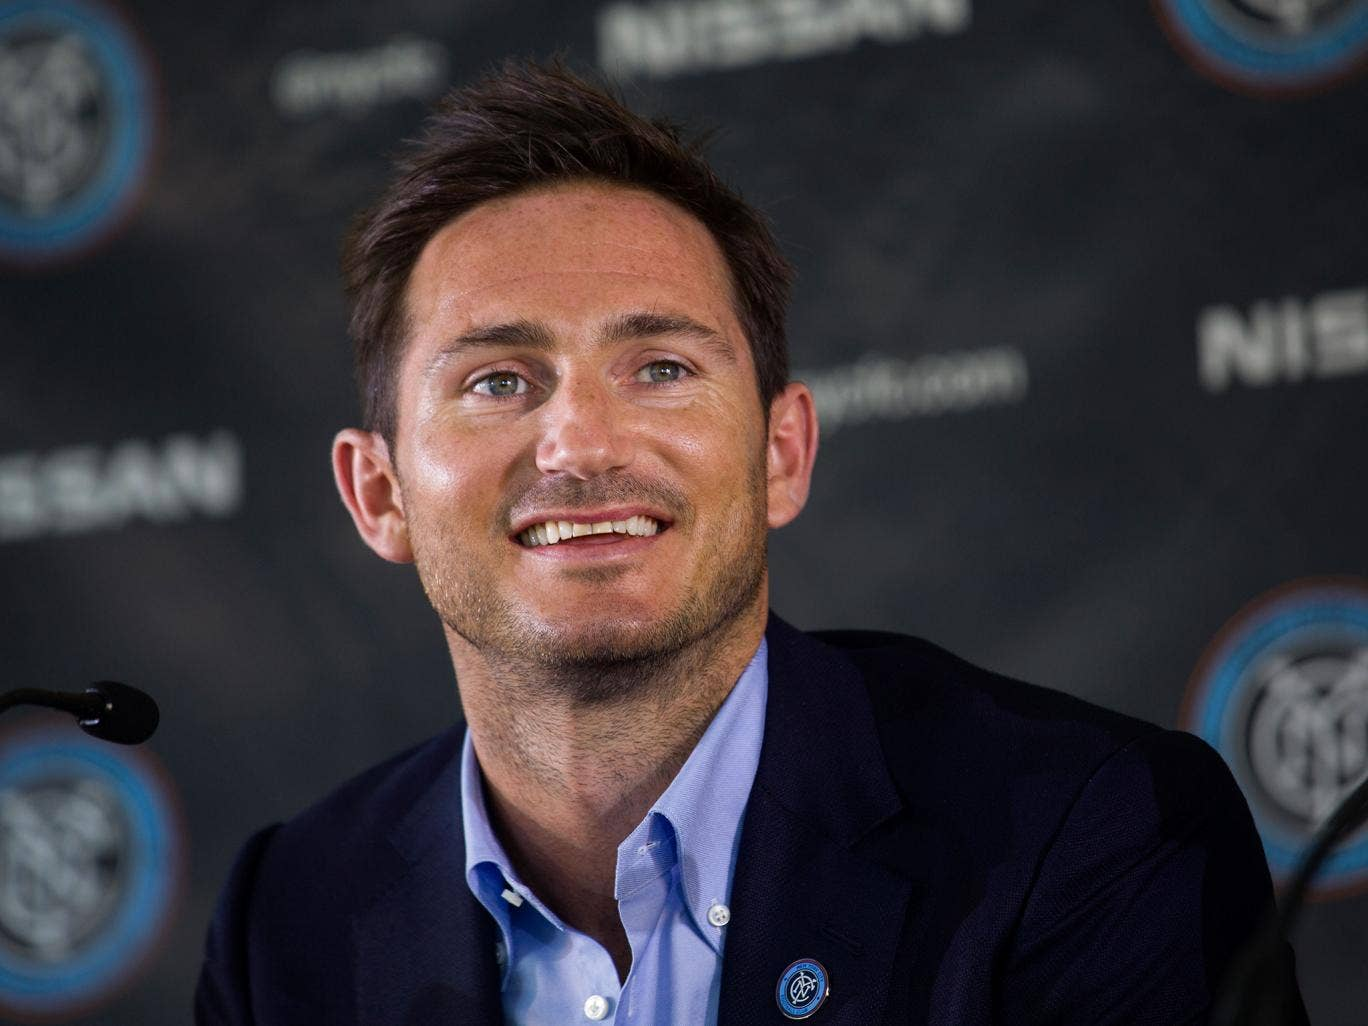 Frank Lampard will join City on loan from their sister club New York City